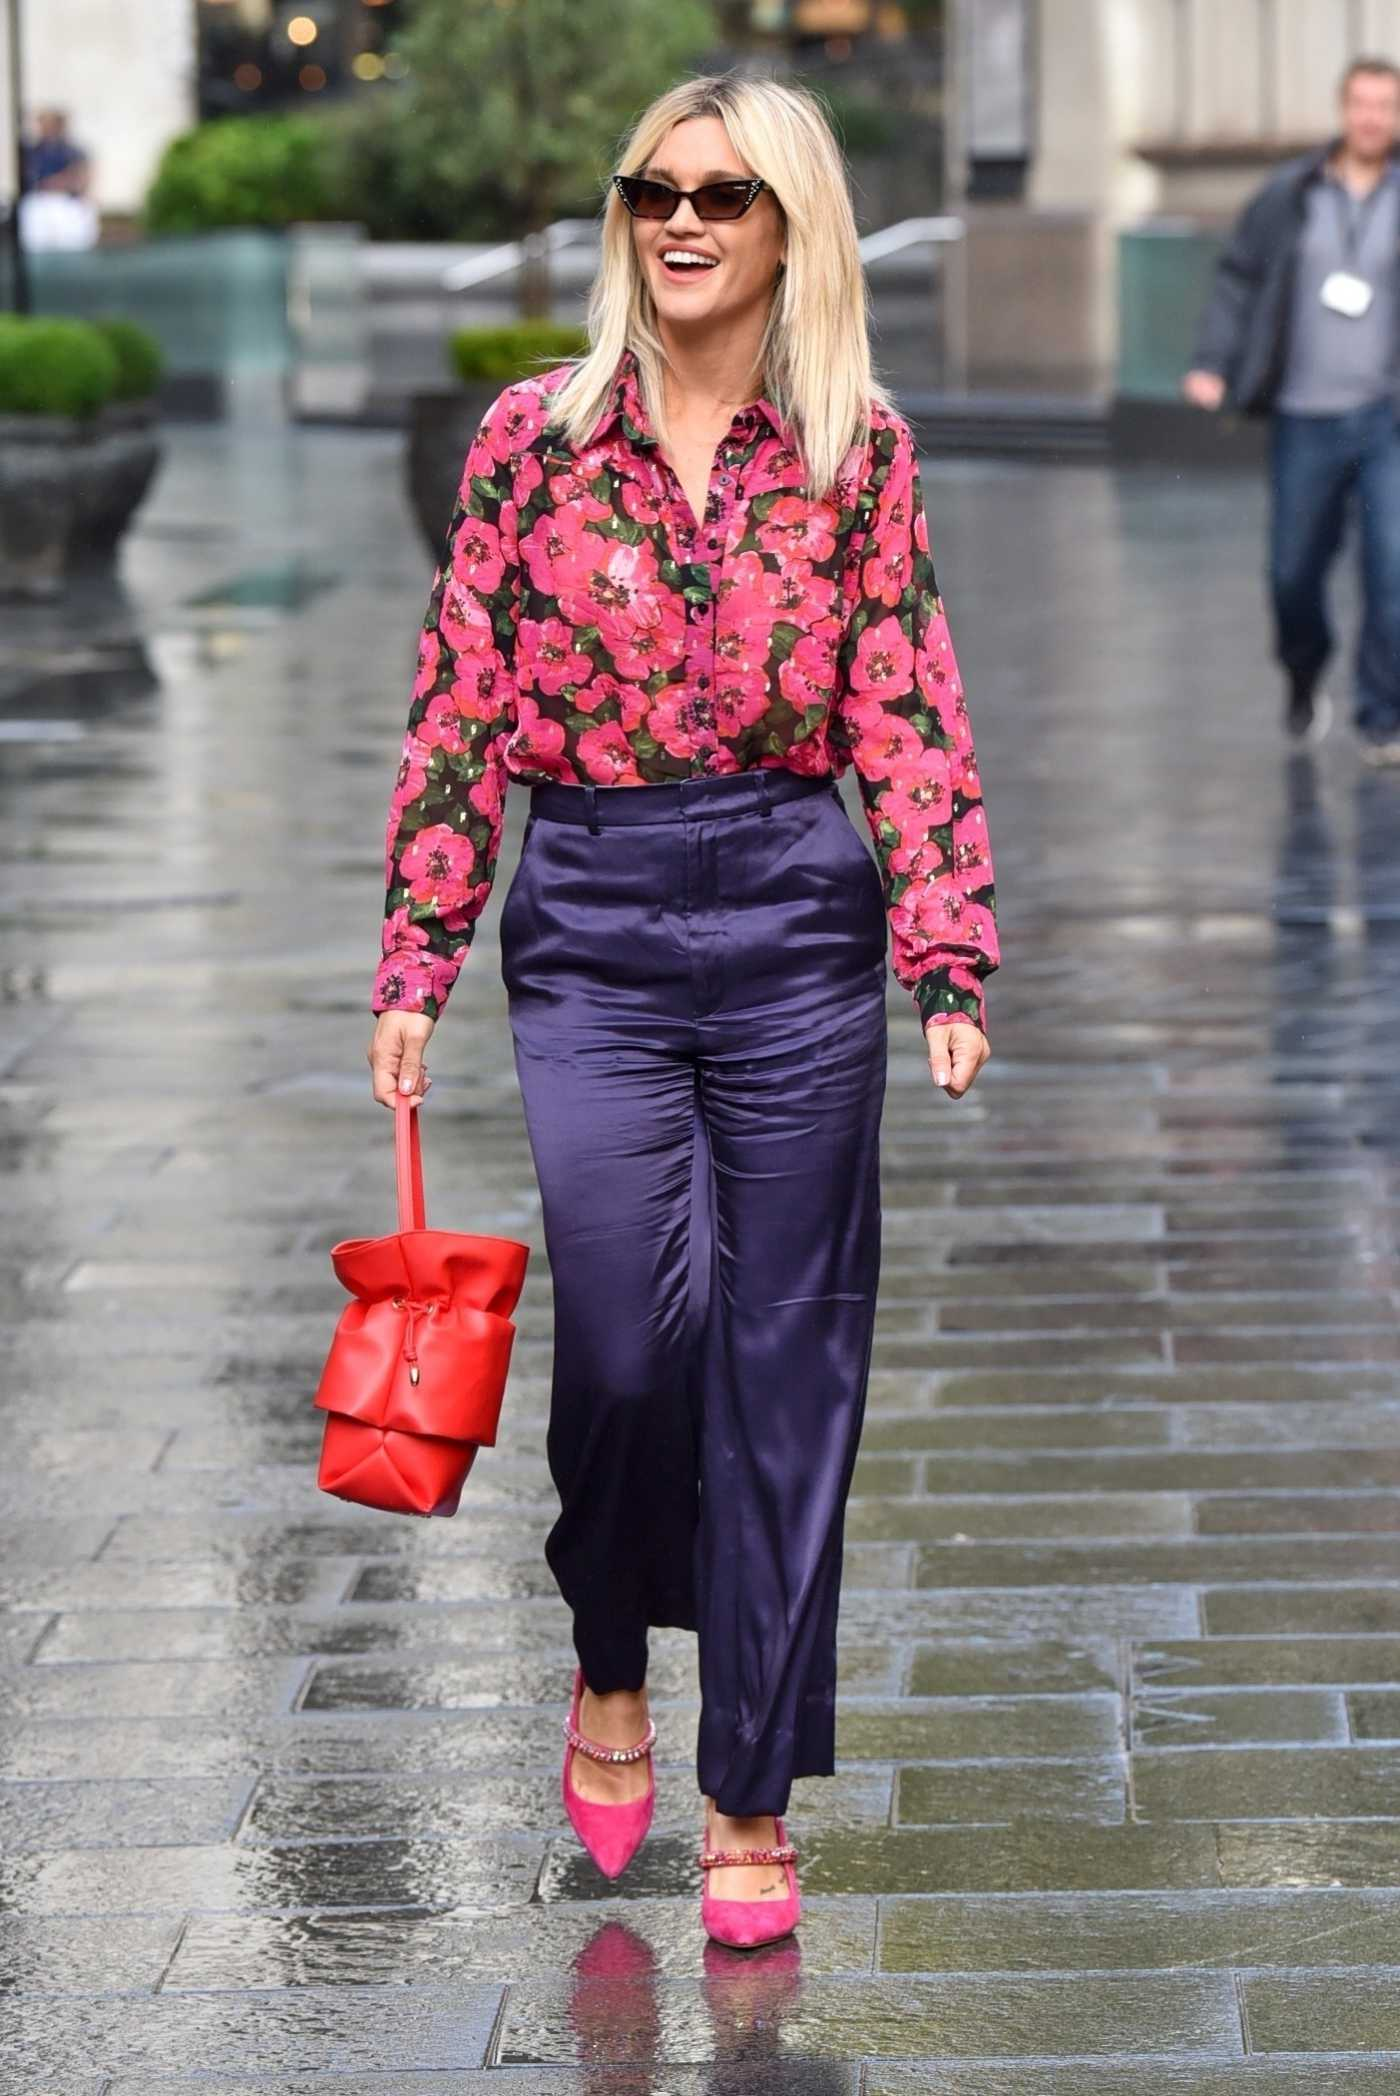 Ashley Roberts in a Floral Blouse Arrives at the Heart Radio in London 09/29/2020